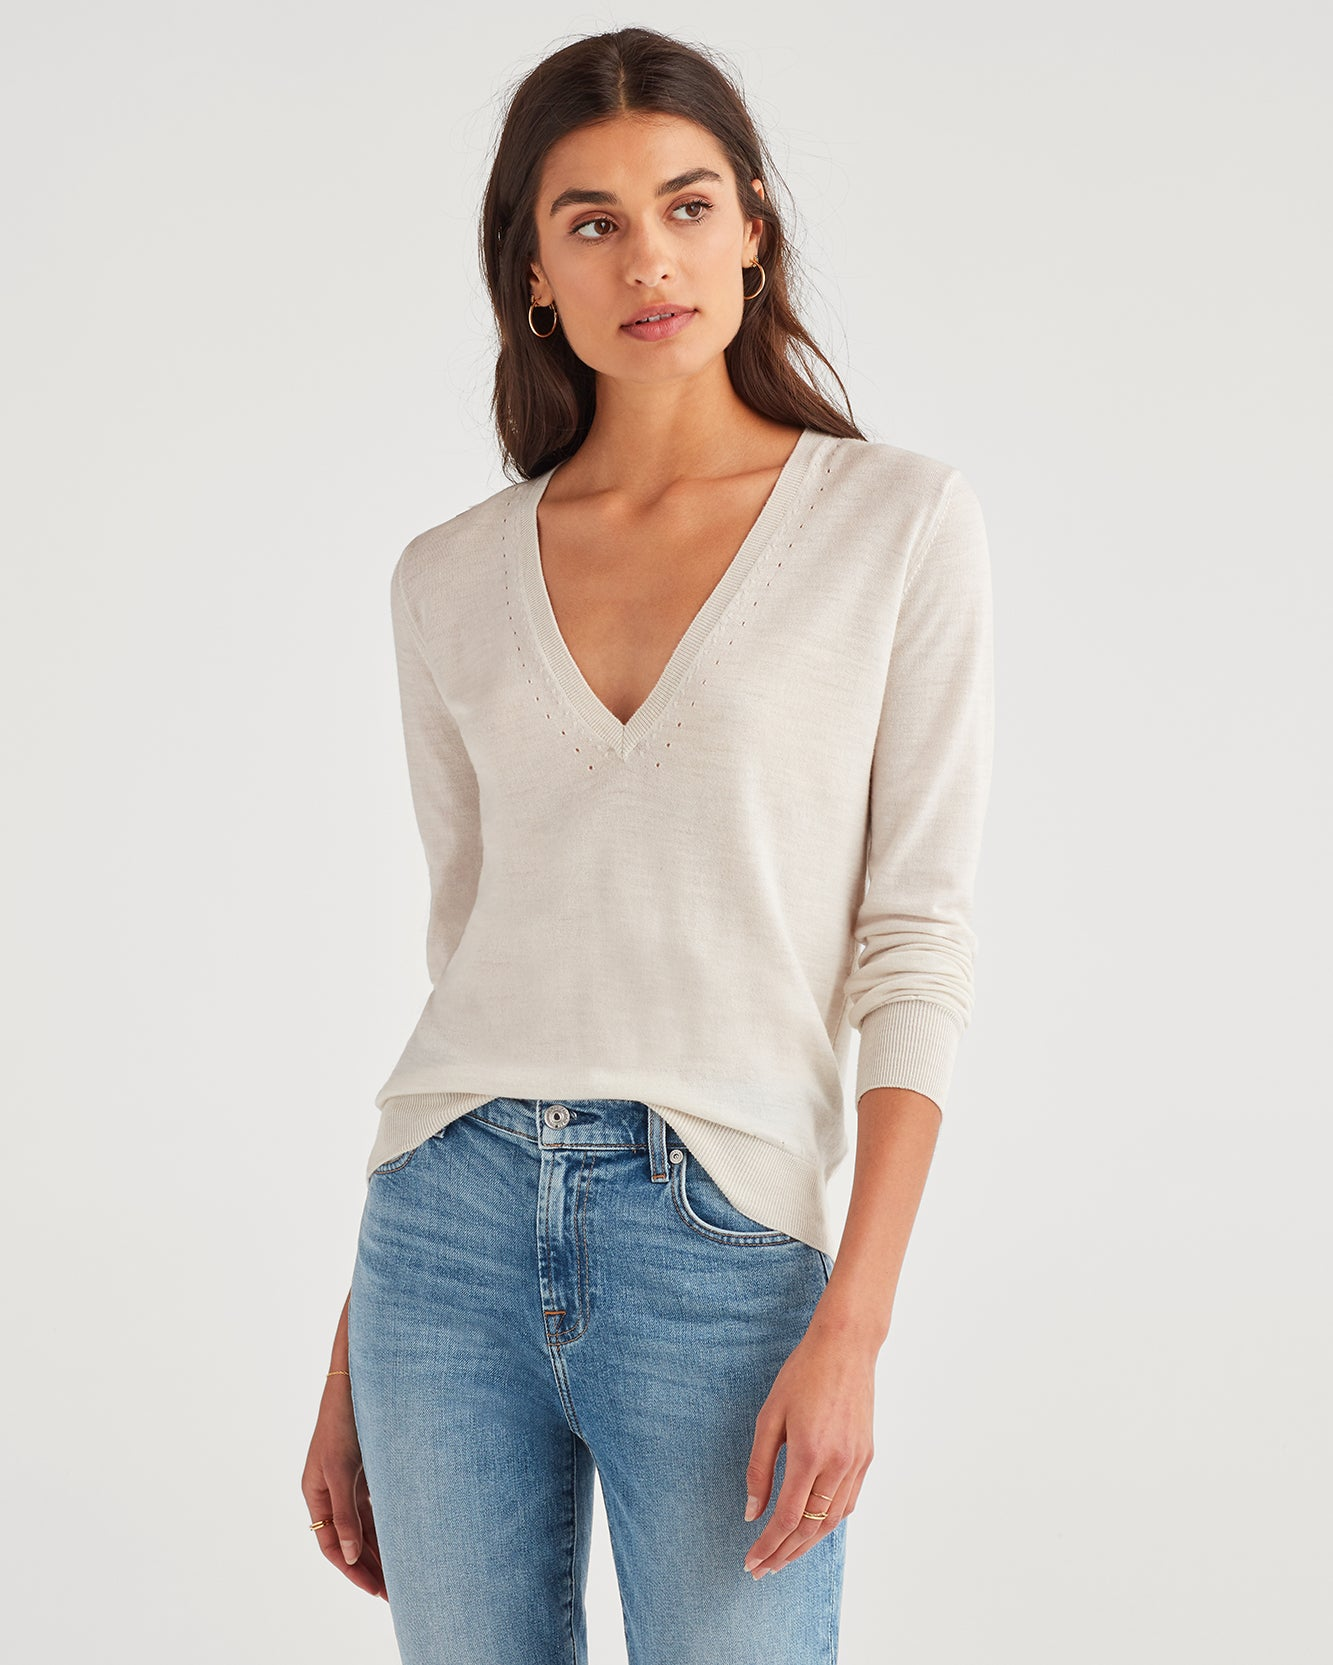 Image of Classic V-Neck Sweater in Off White